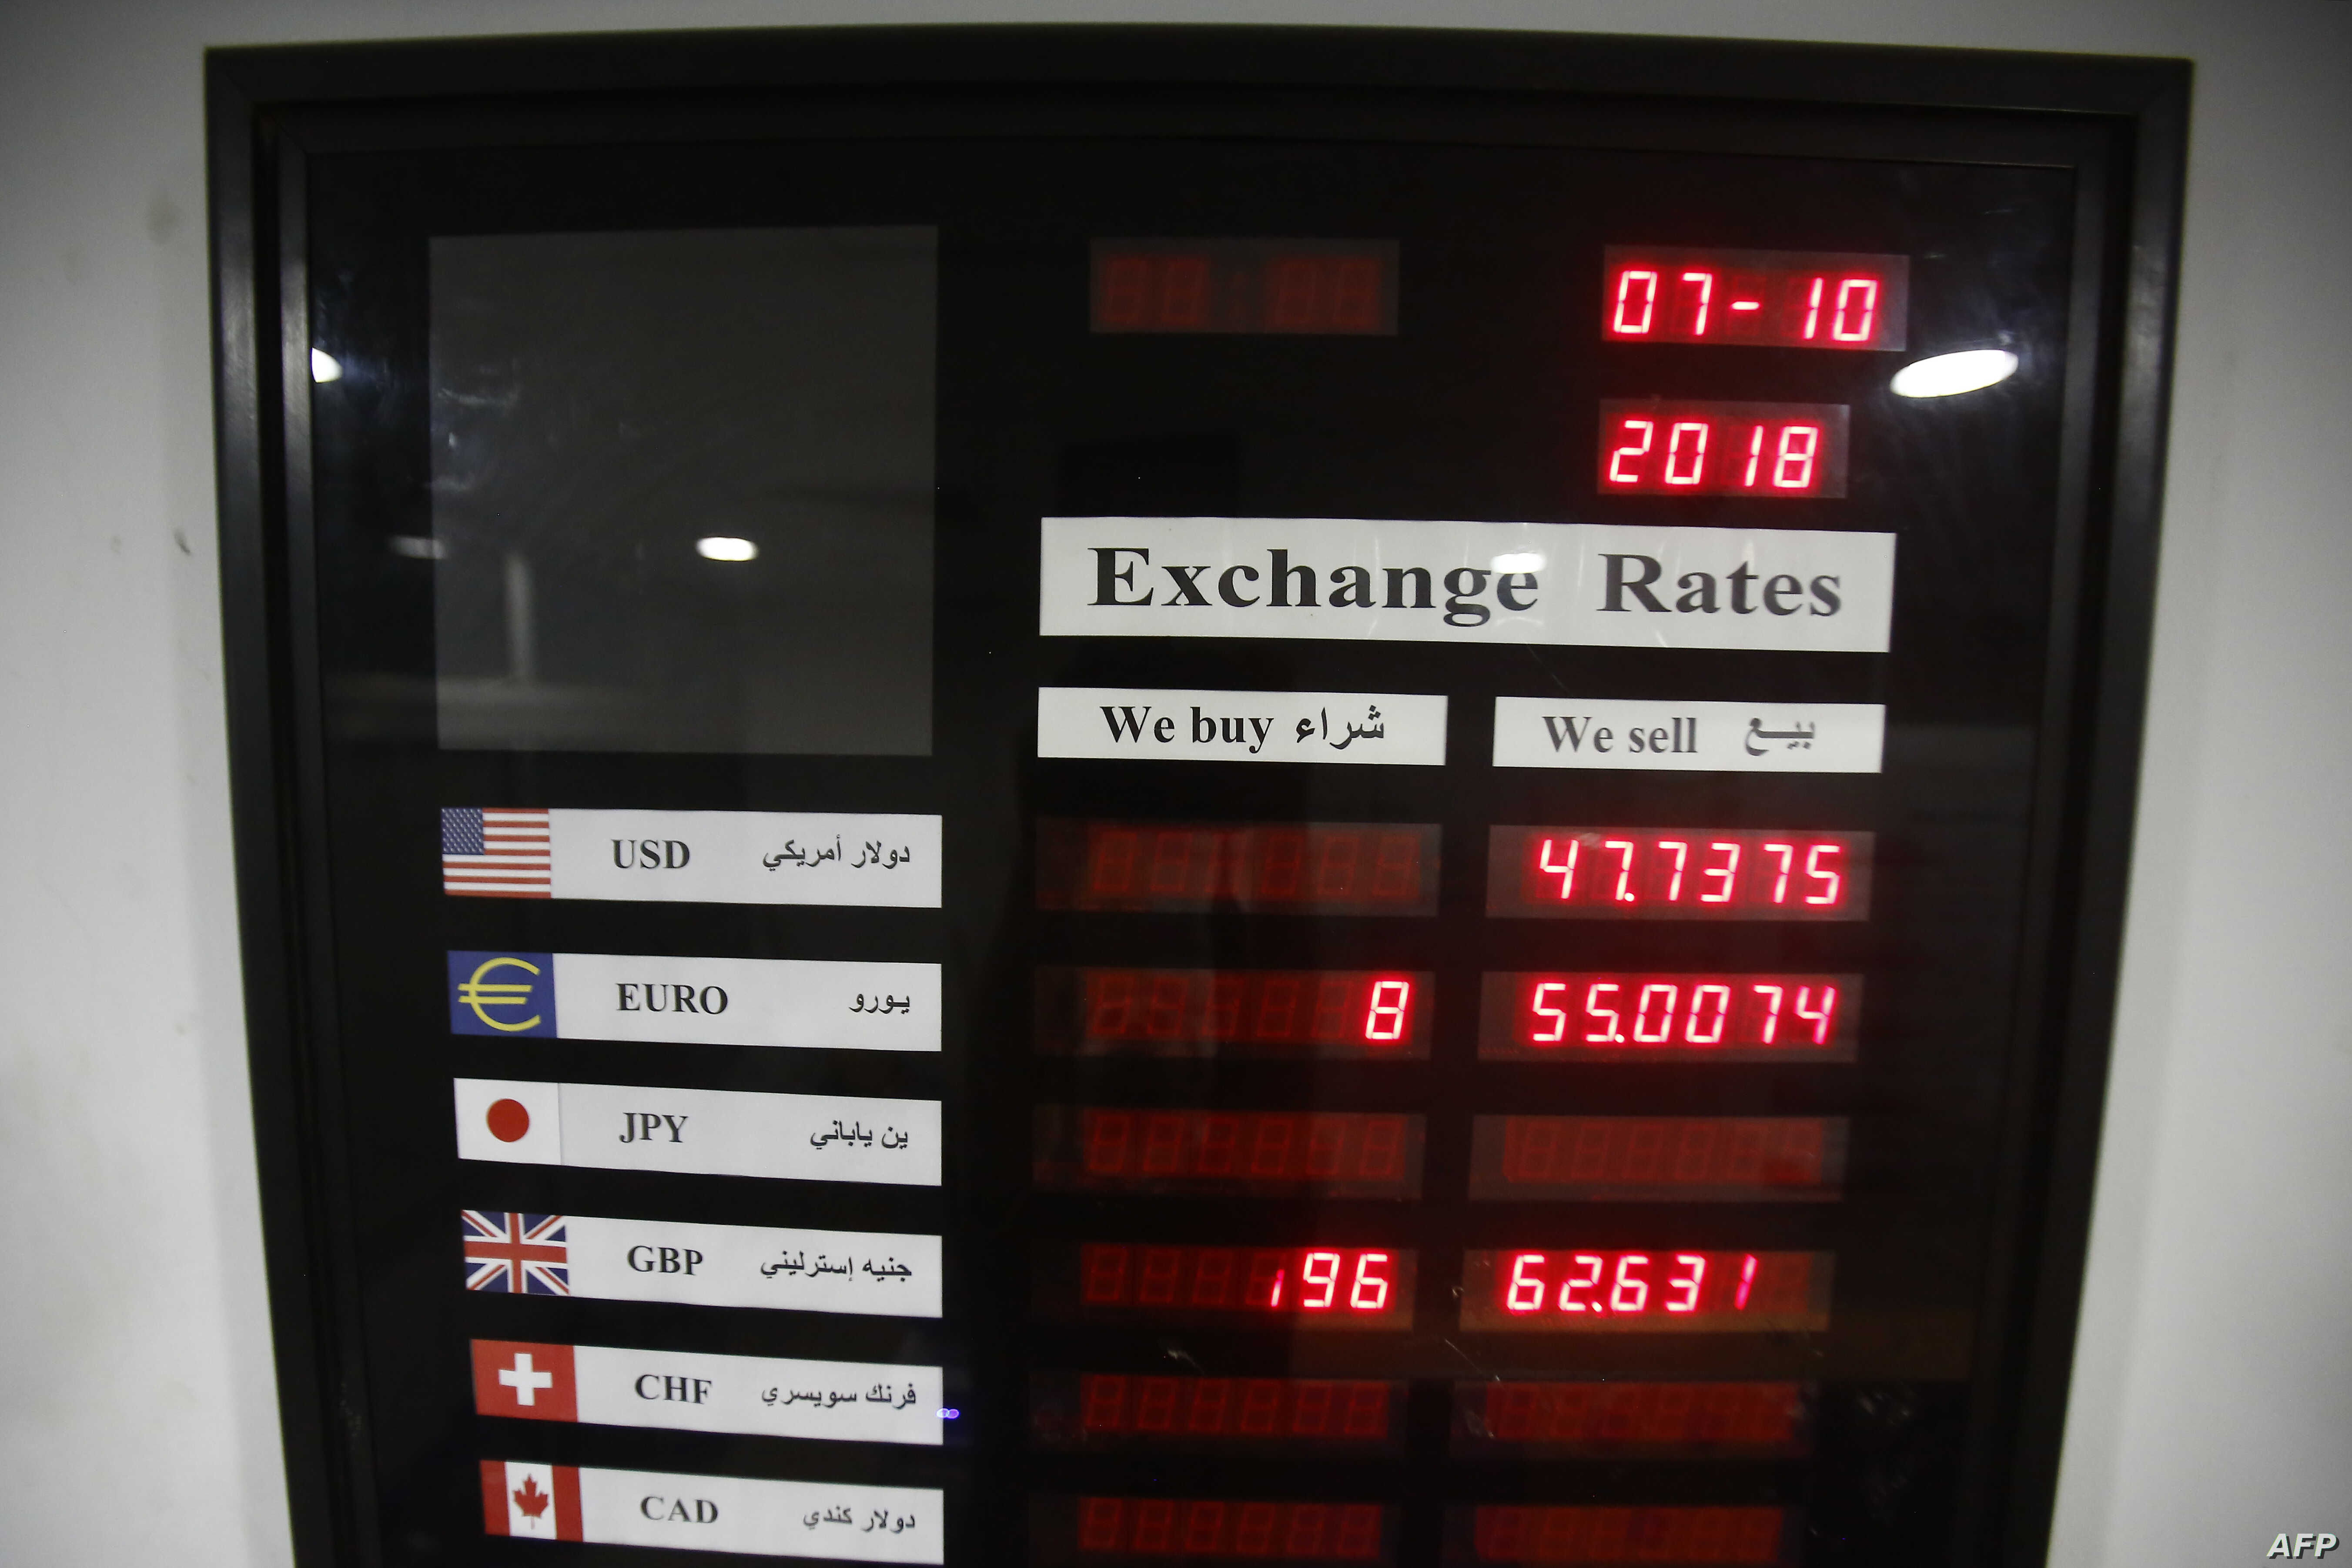 Exhcange rates are displayed at a foreign currency brokerage office in Khartoum on Oct. 7, 2018